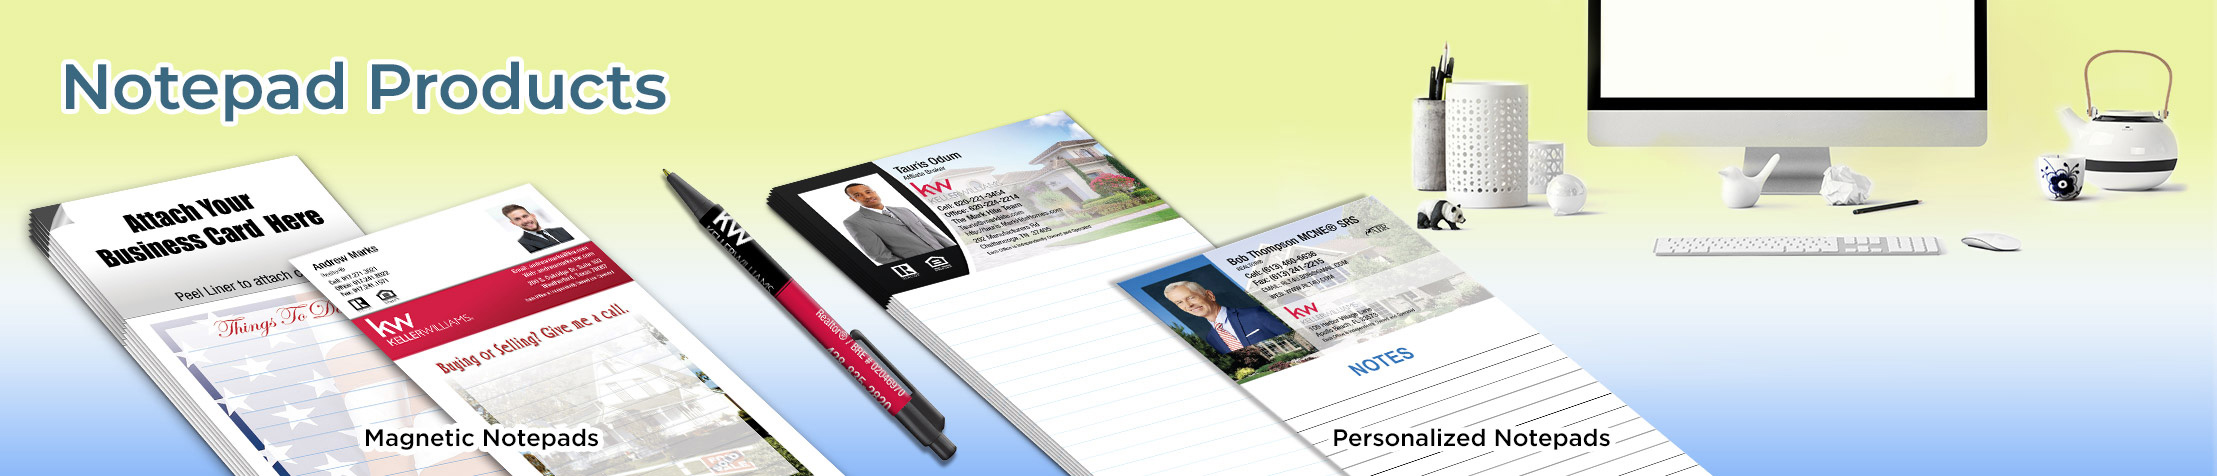 Keller Williams Real Estate Notepads - KW approved vendor custom stationery and marketing tools, magnetic and personalized notepads | BestPrintBuy.com